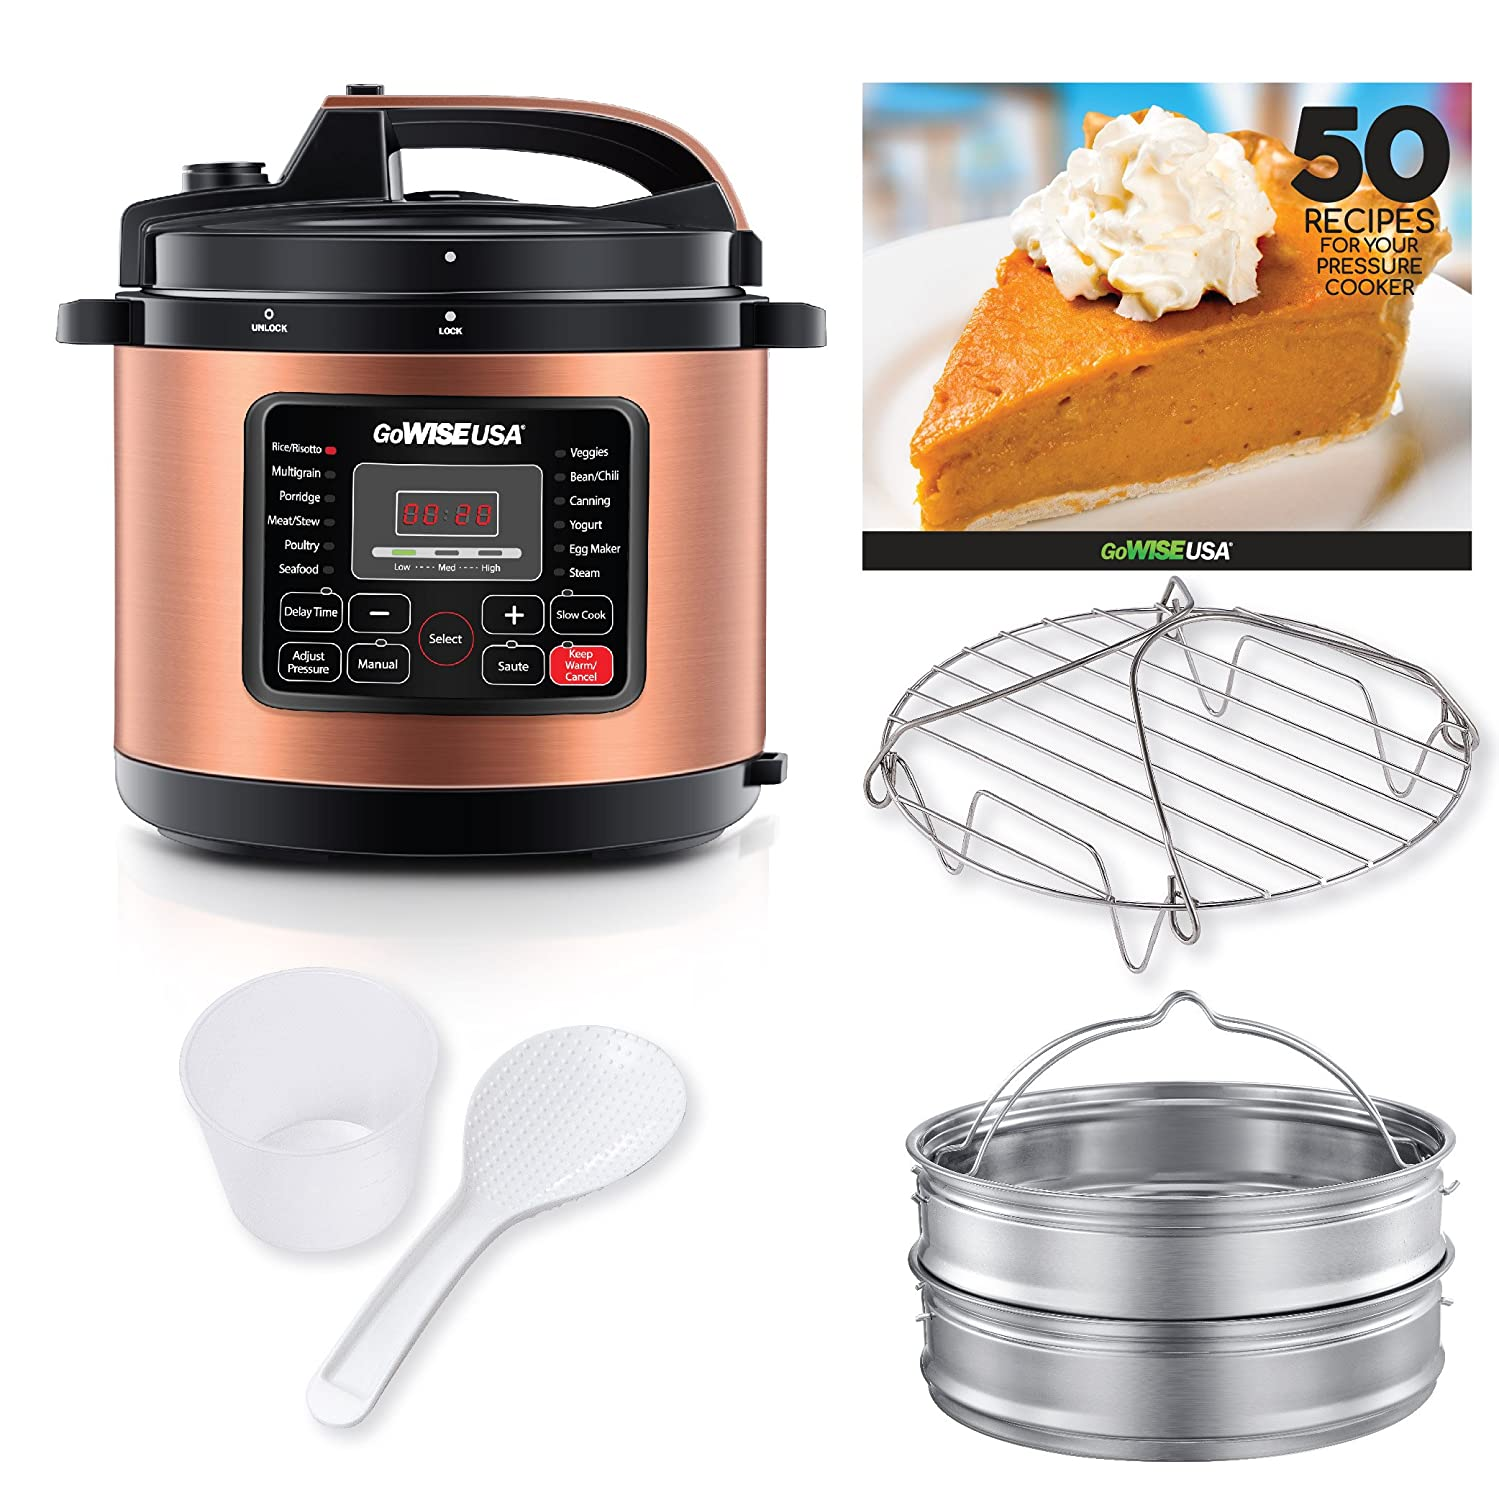 GoWISE USA 12-in-1 Electric High-Pressure Cooker, Canner with Measuring Cup, Stainless Steel Rack and Steam Basket, and Spoon (10-QT, Copper)